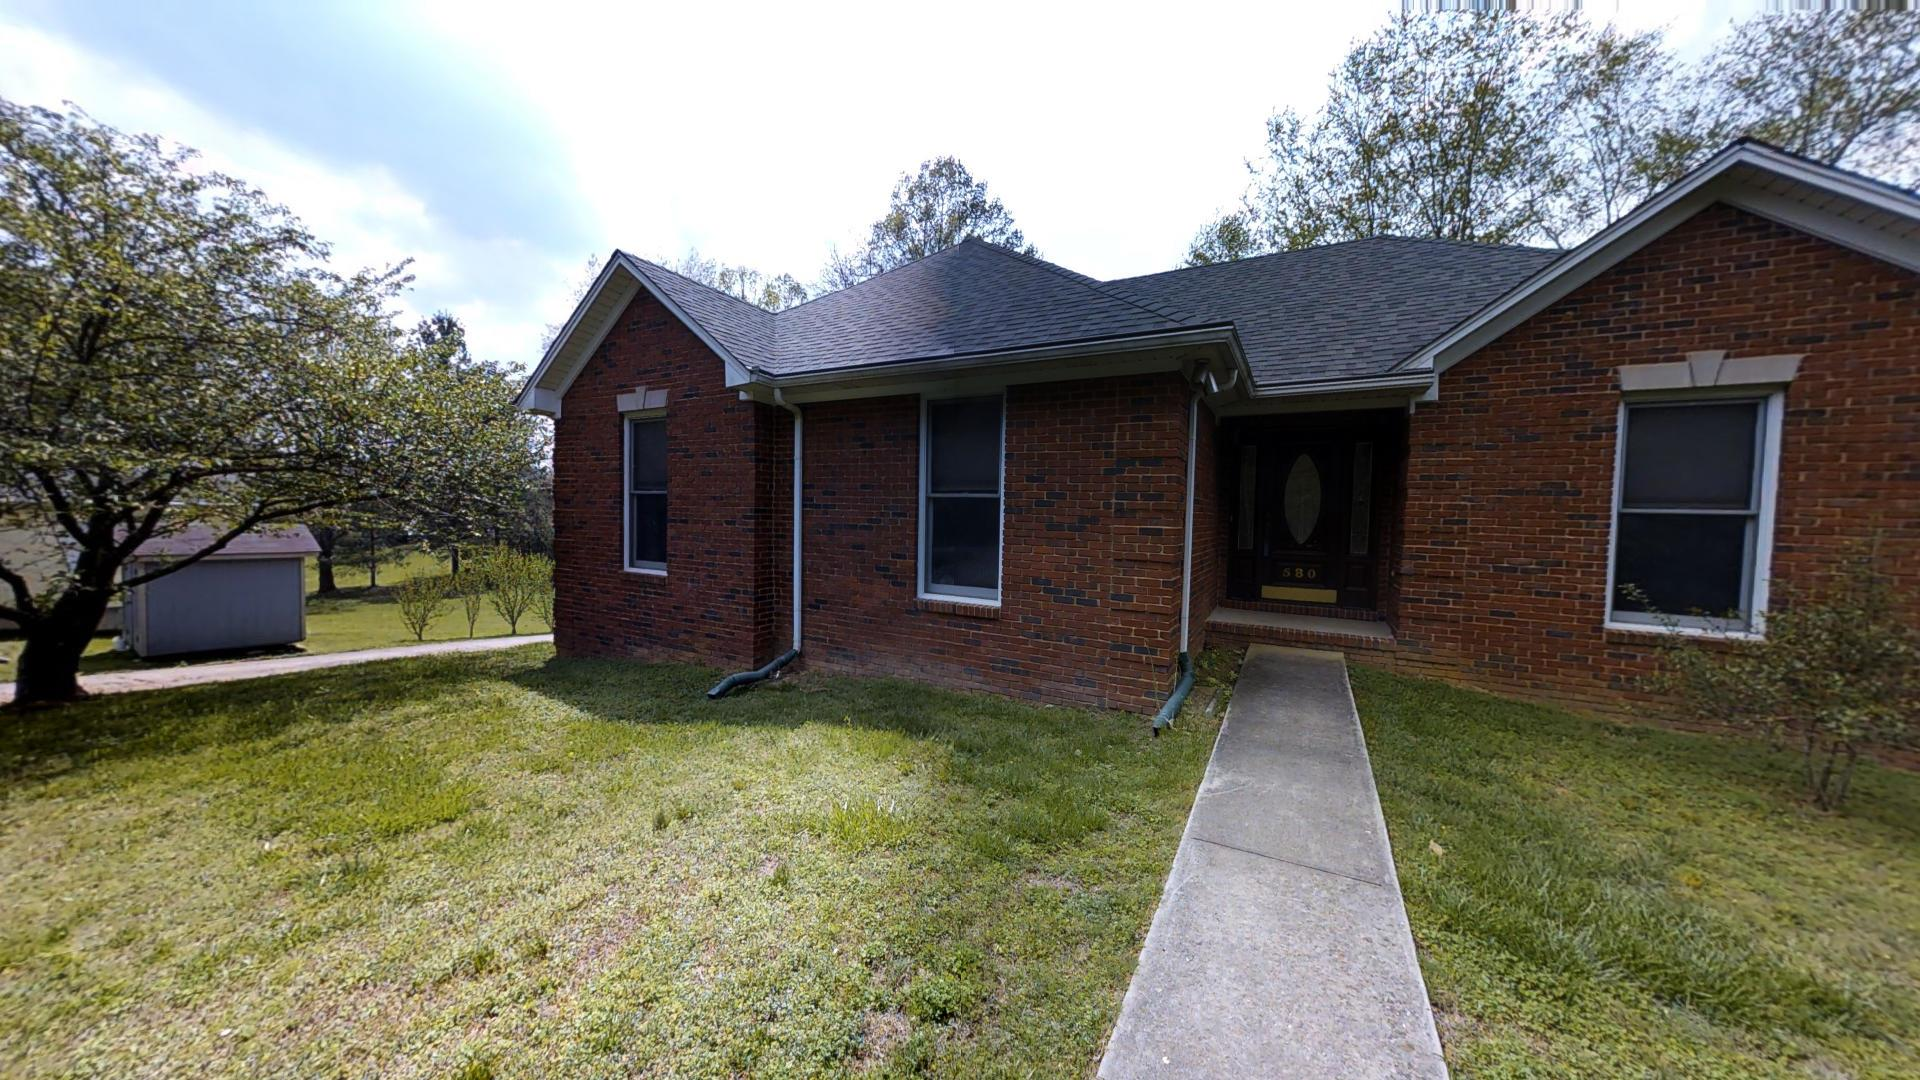 580 Pickard Ave, N, Cookeville, TN 38501